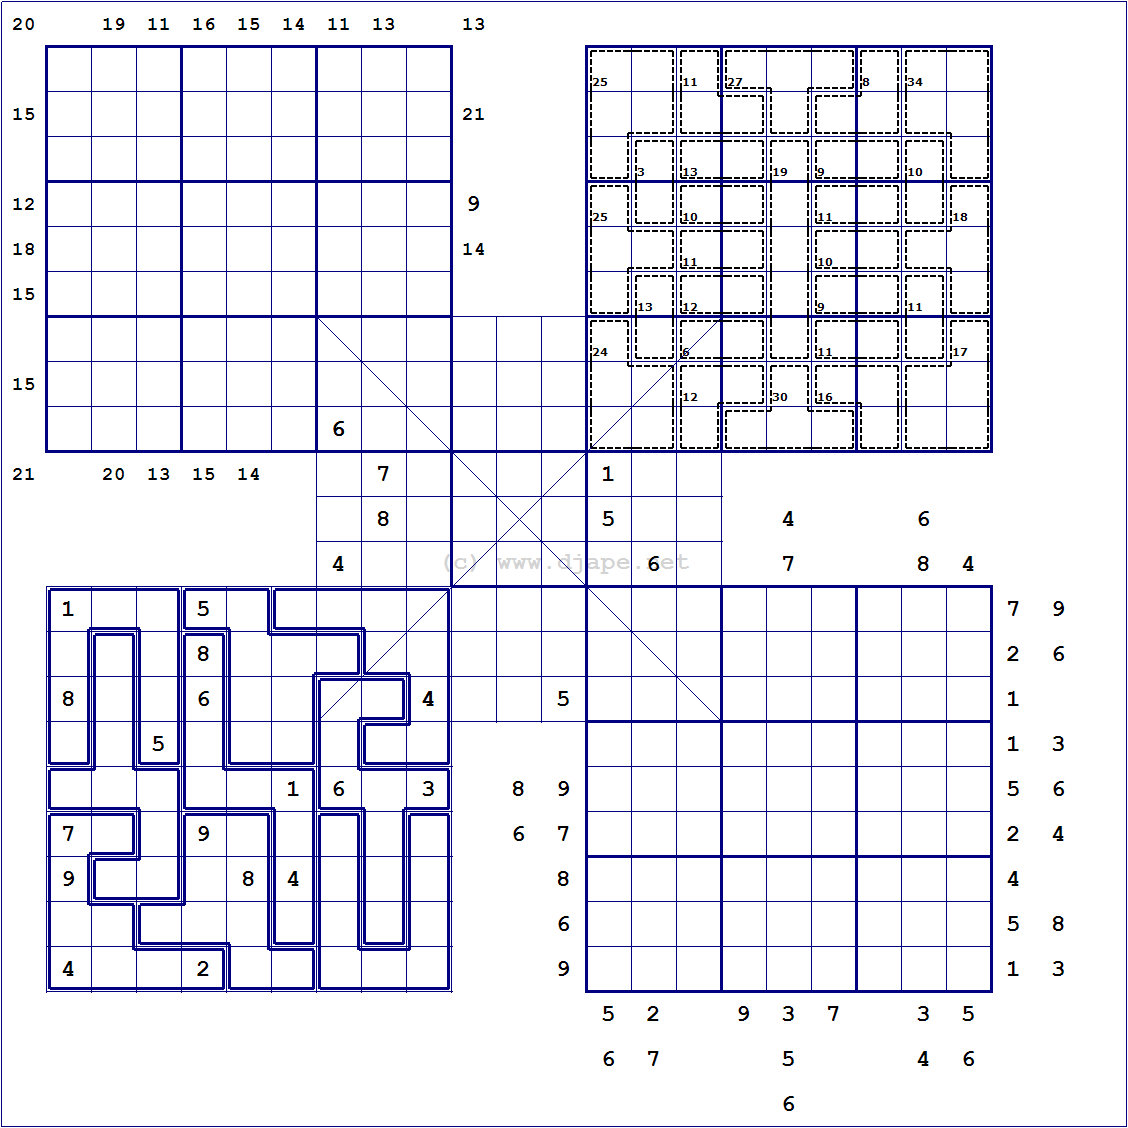 photograph relating to Jigsaw Sudoku Printable called Loco Sudoku